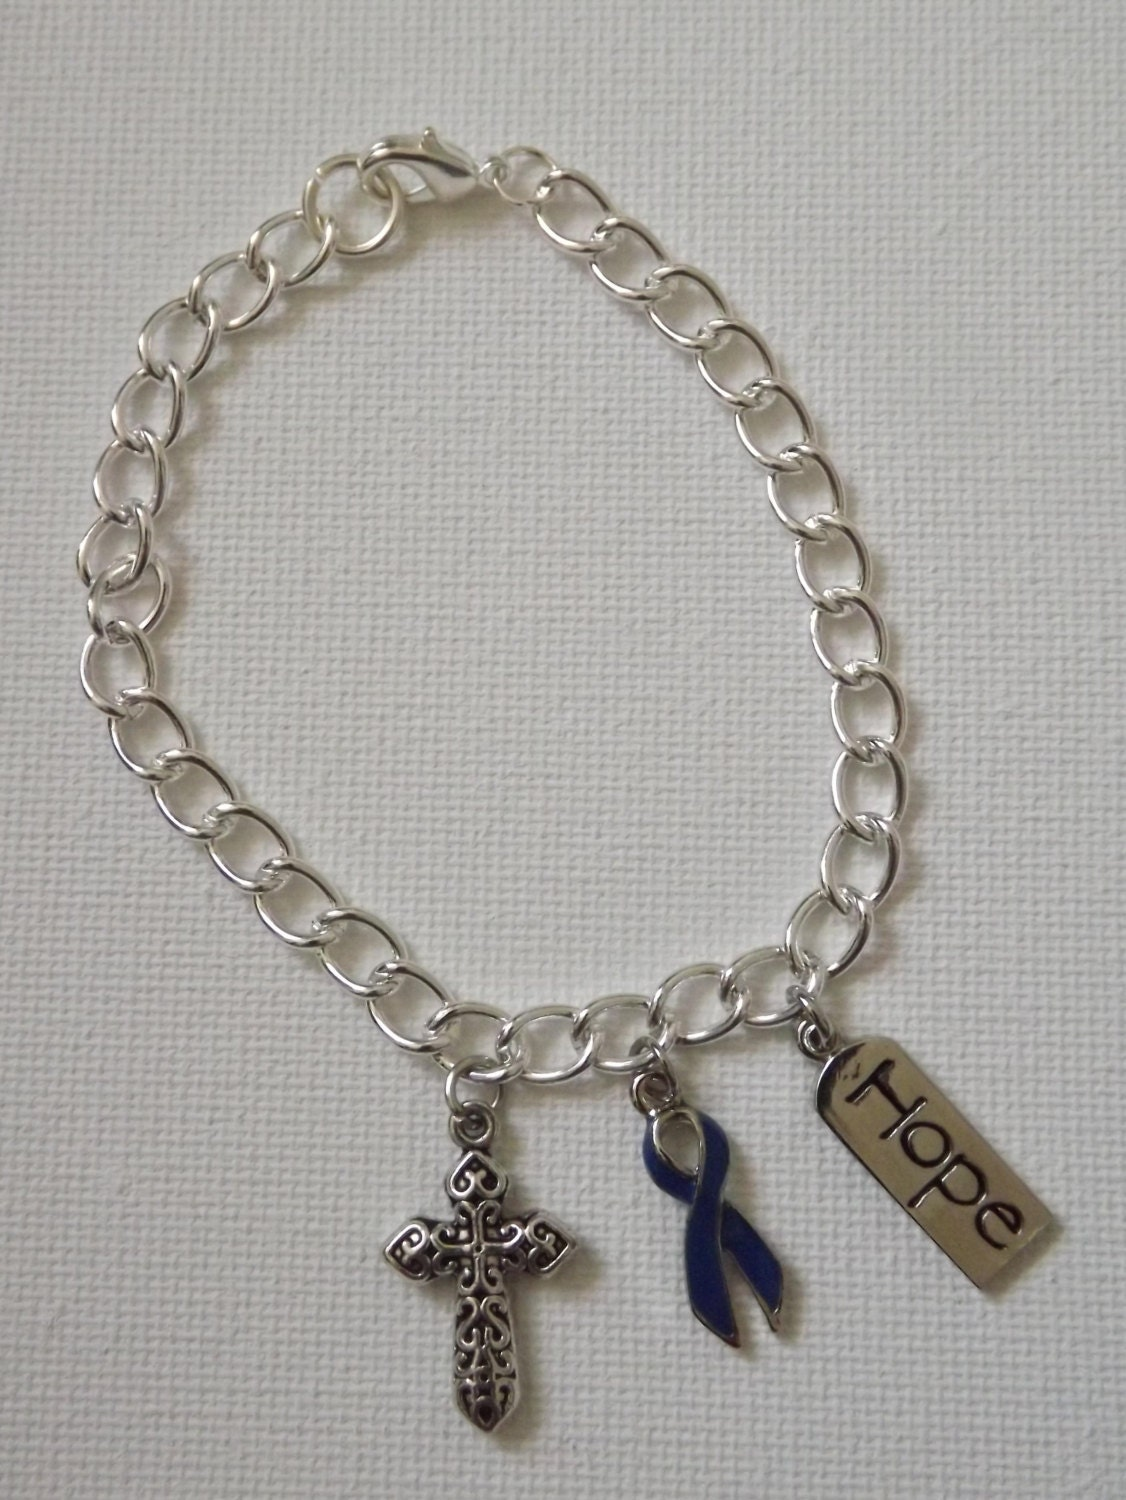 colon cancer awareness charm bracelet by jewelsofhopebyjess